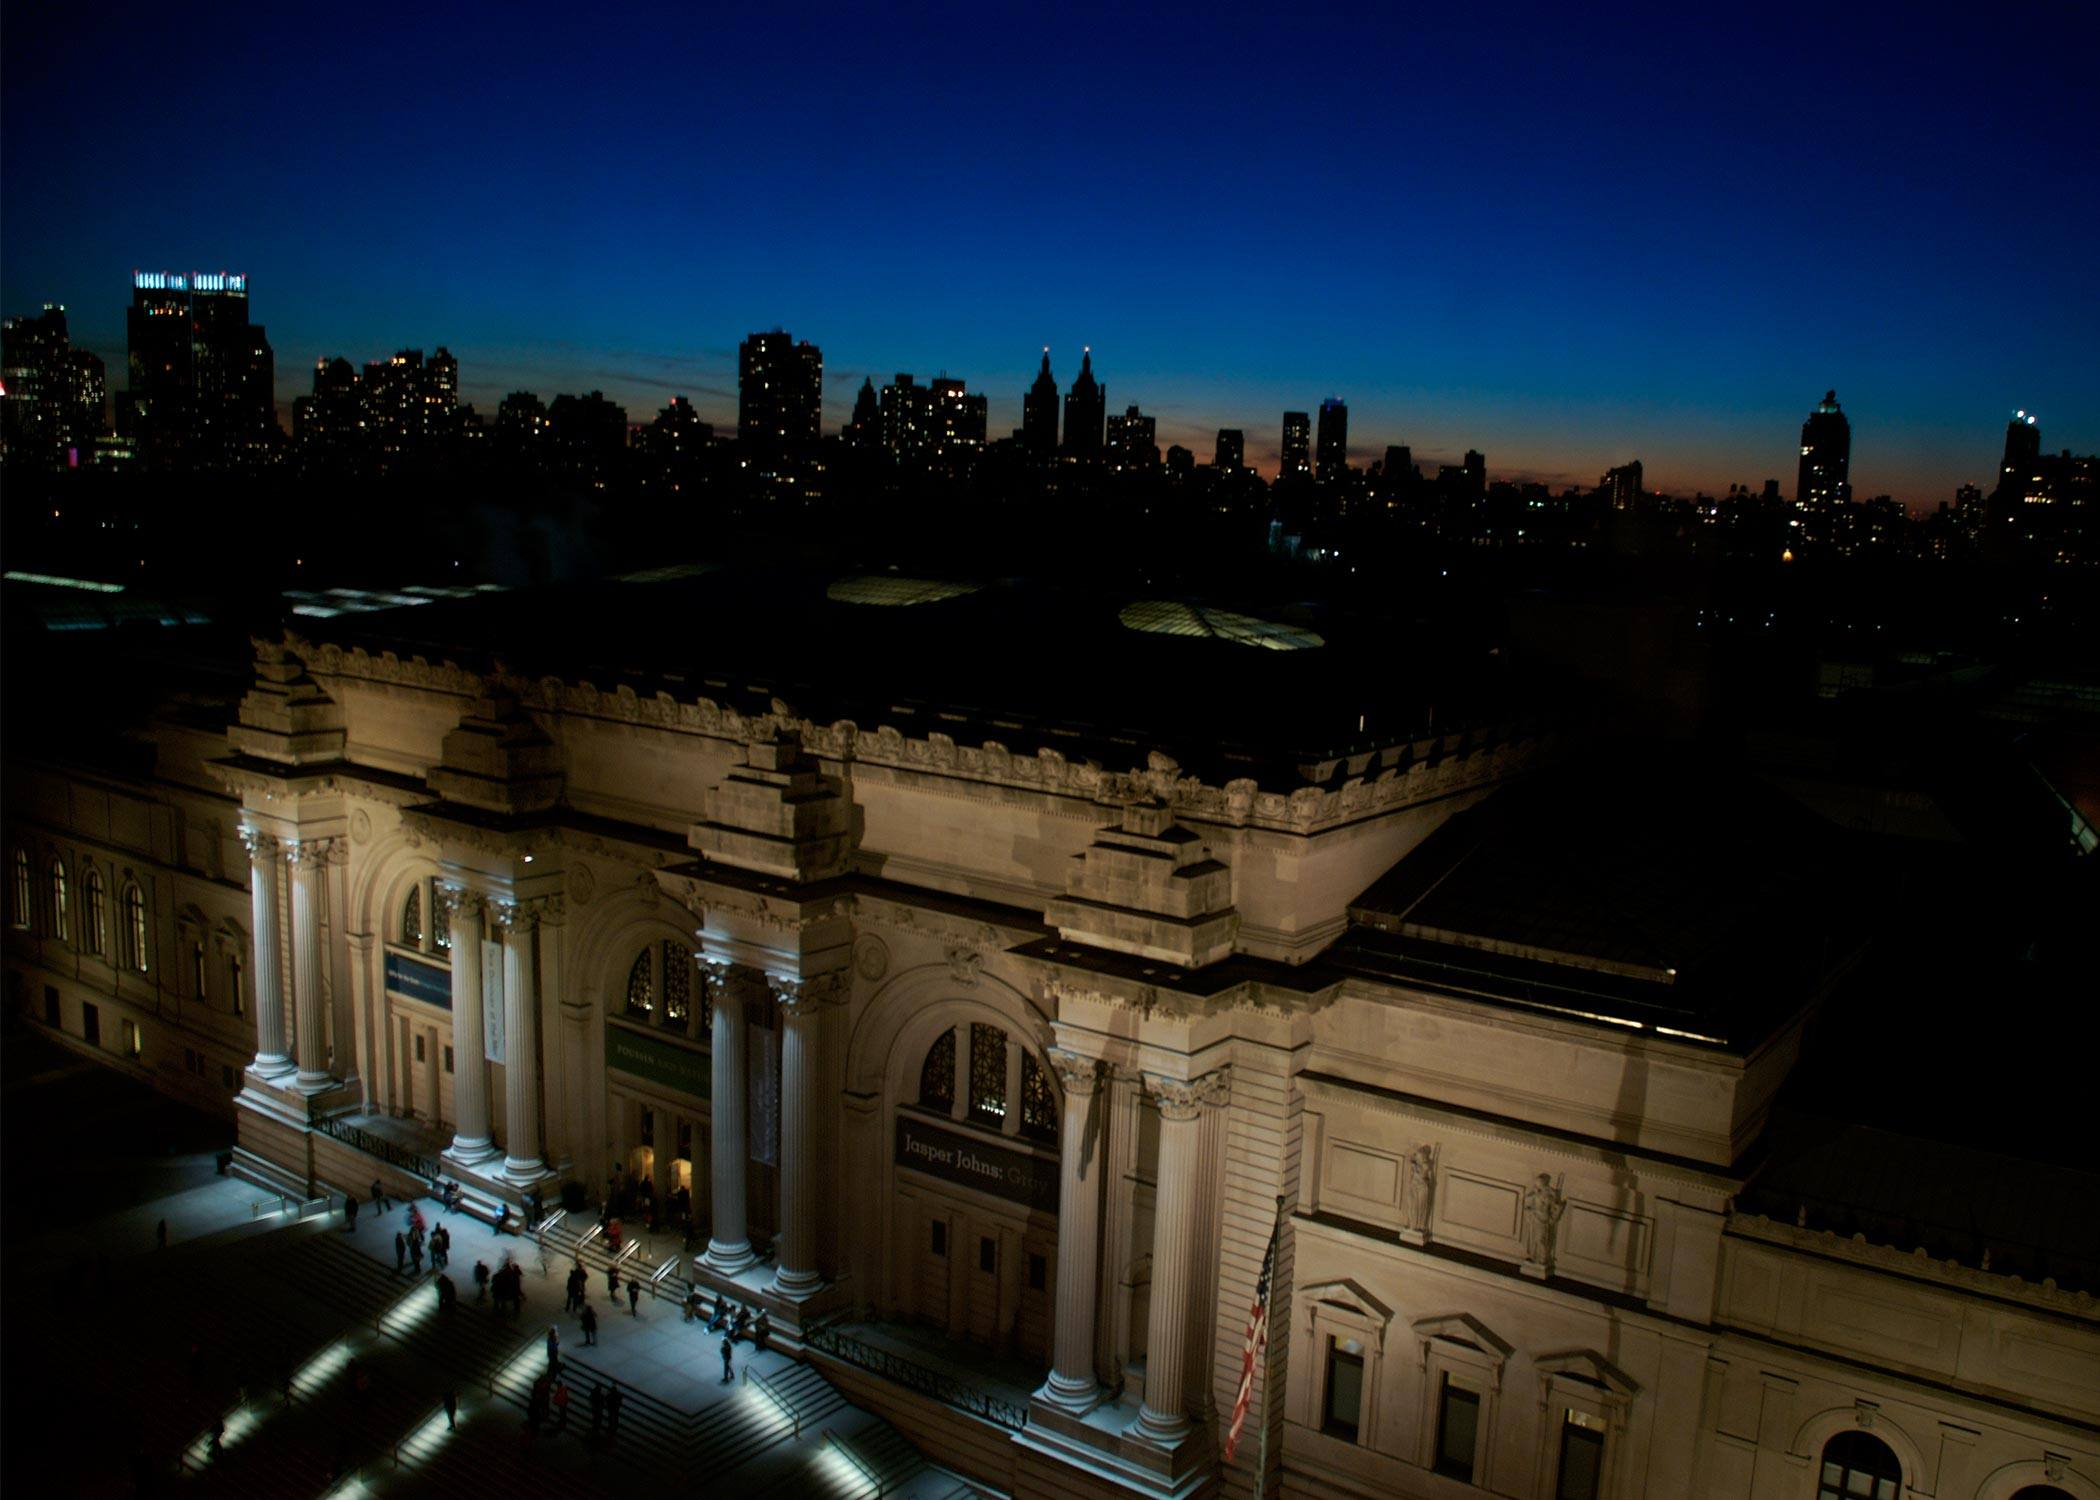 Exterior The Metropolitan Museum of Art at night